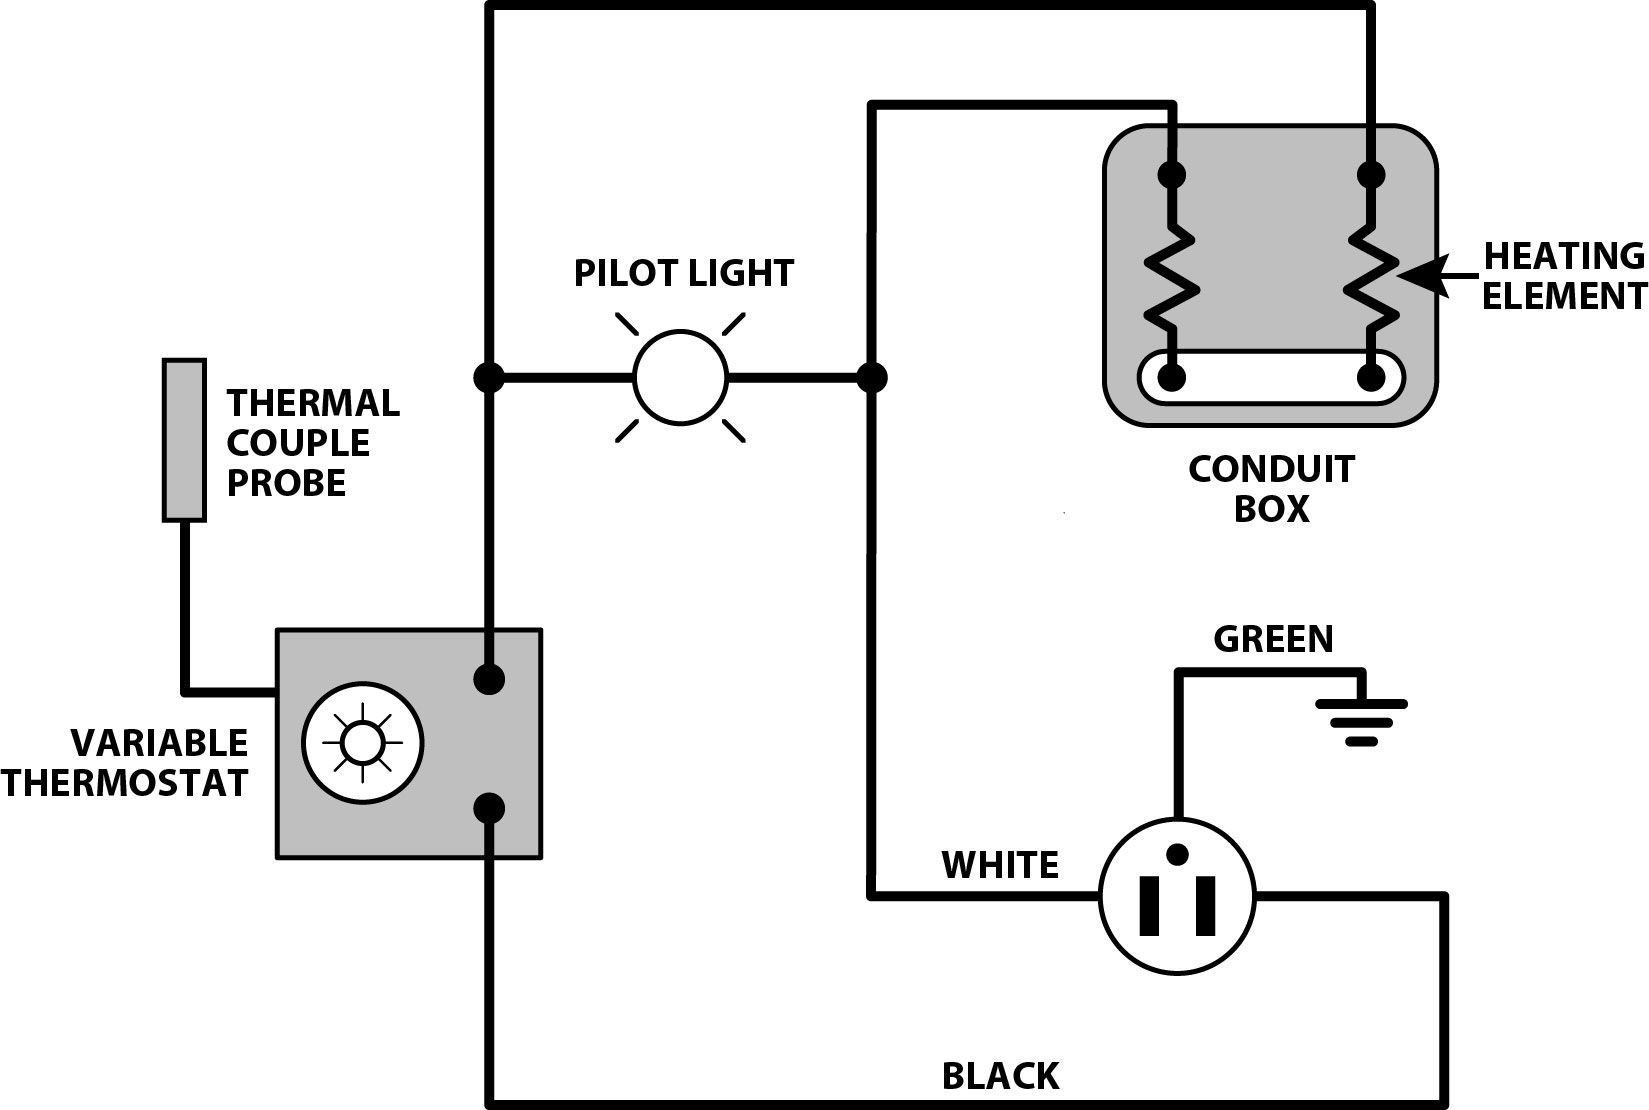 kenmore dryer wiring diagram heating element images lg washing heating element for 220 volt wiring diagram image about